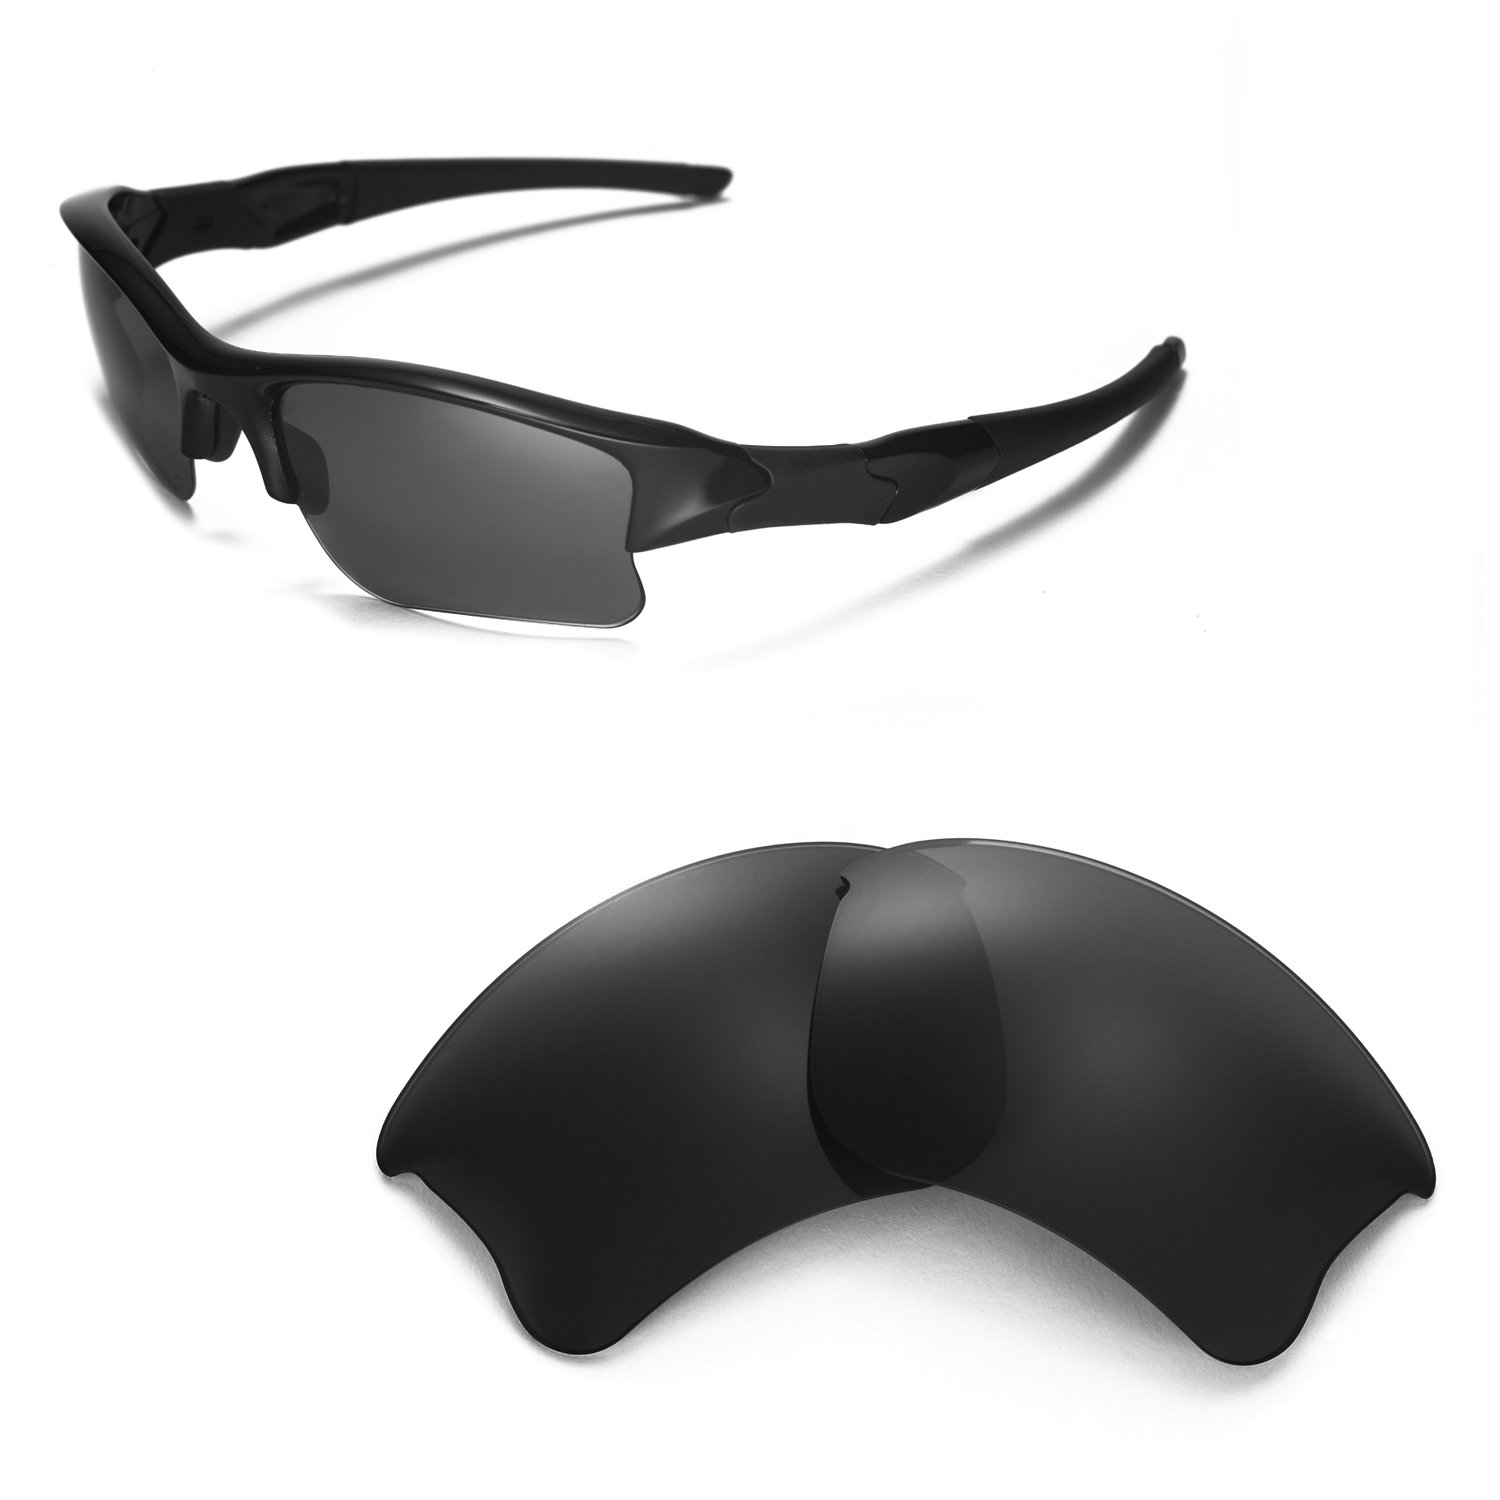 Walleva Replacement Lenses for Oakley Flak Jacket XLJ Sunglasses - Multiple Options Available (Black - Polarized)